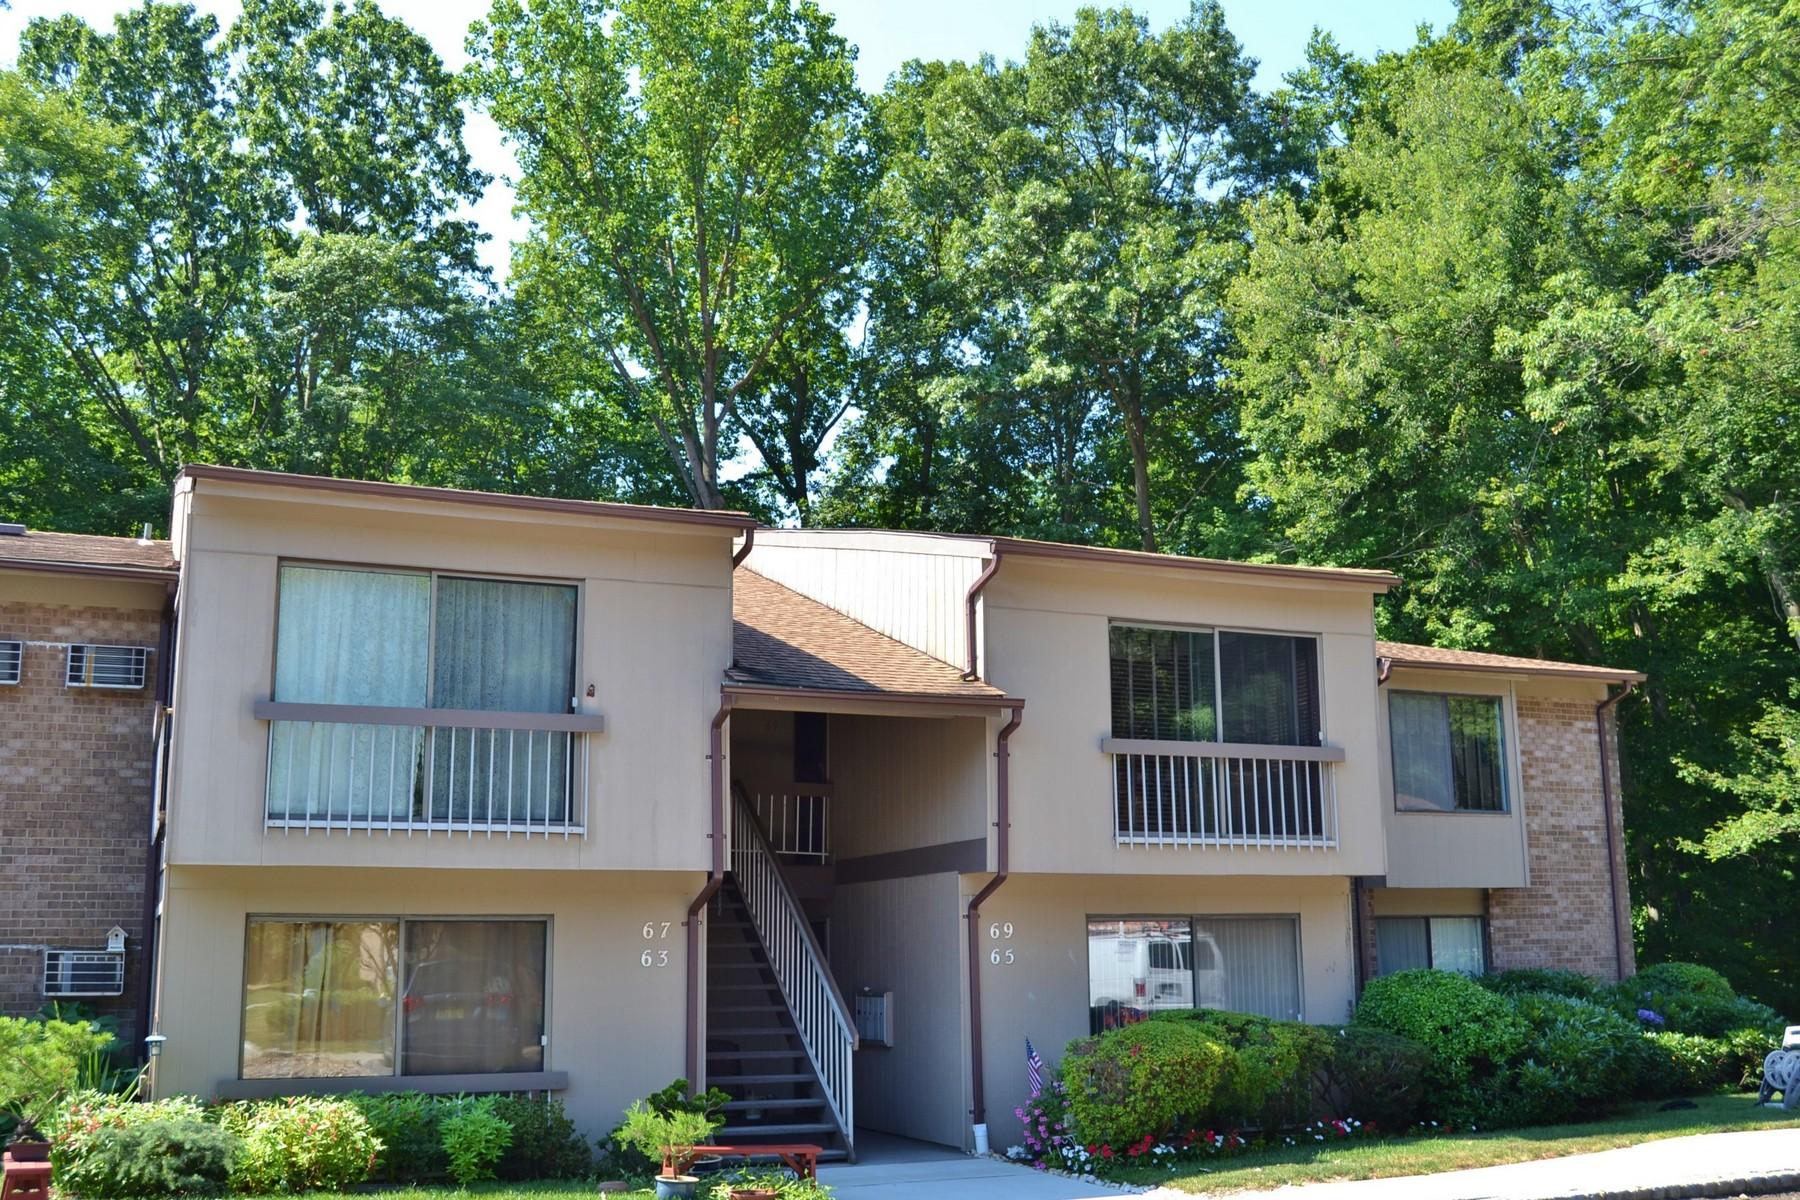 Condominium for Sale at Well Kept Upper Level Navesink Model 69 Lexington Ct. Middletown, New Jersey 07748 United States